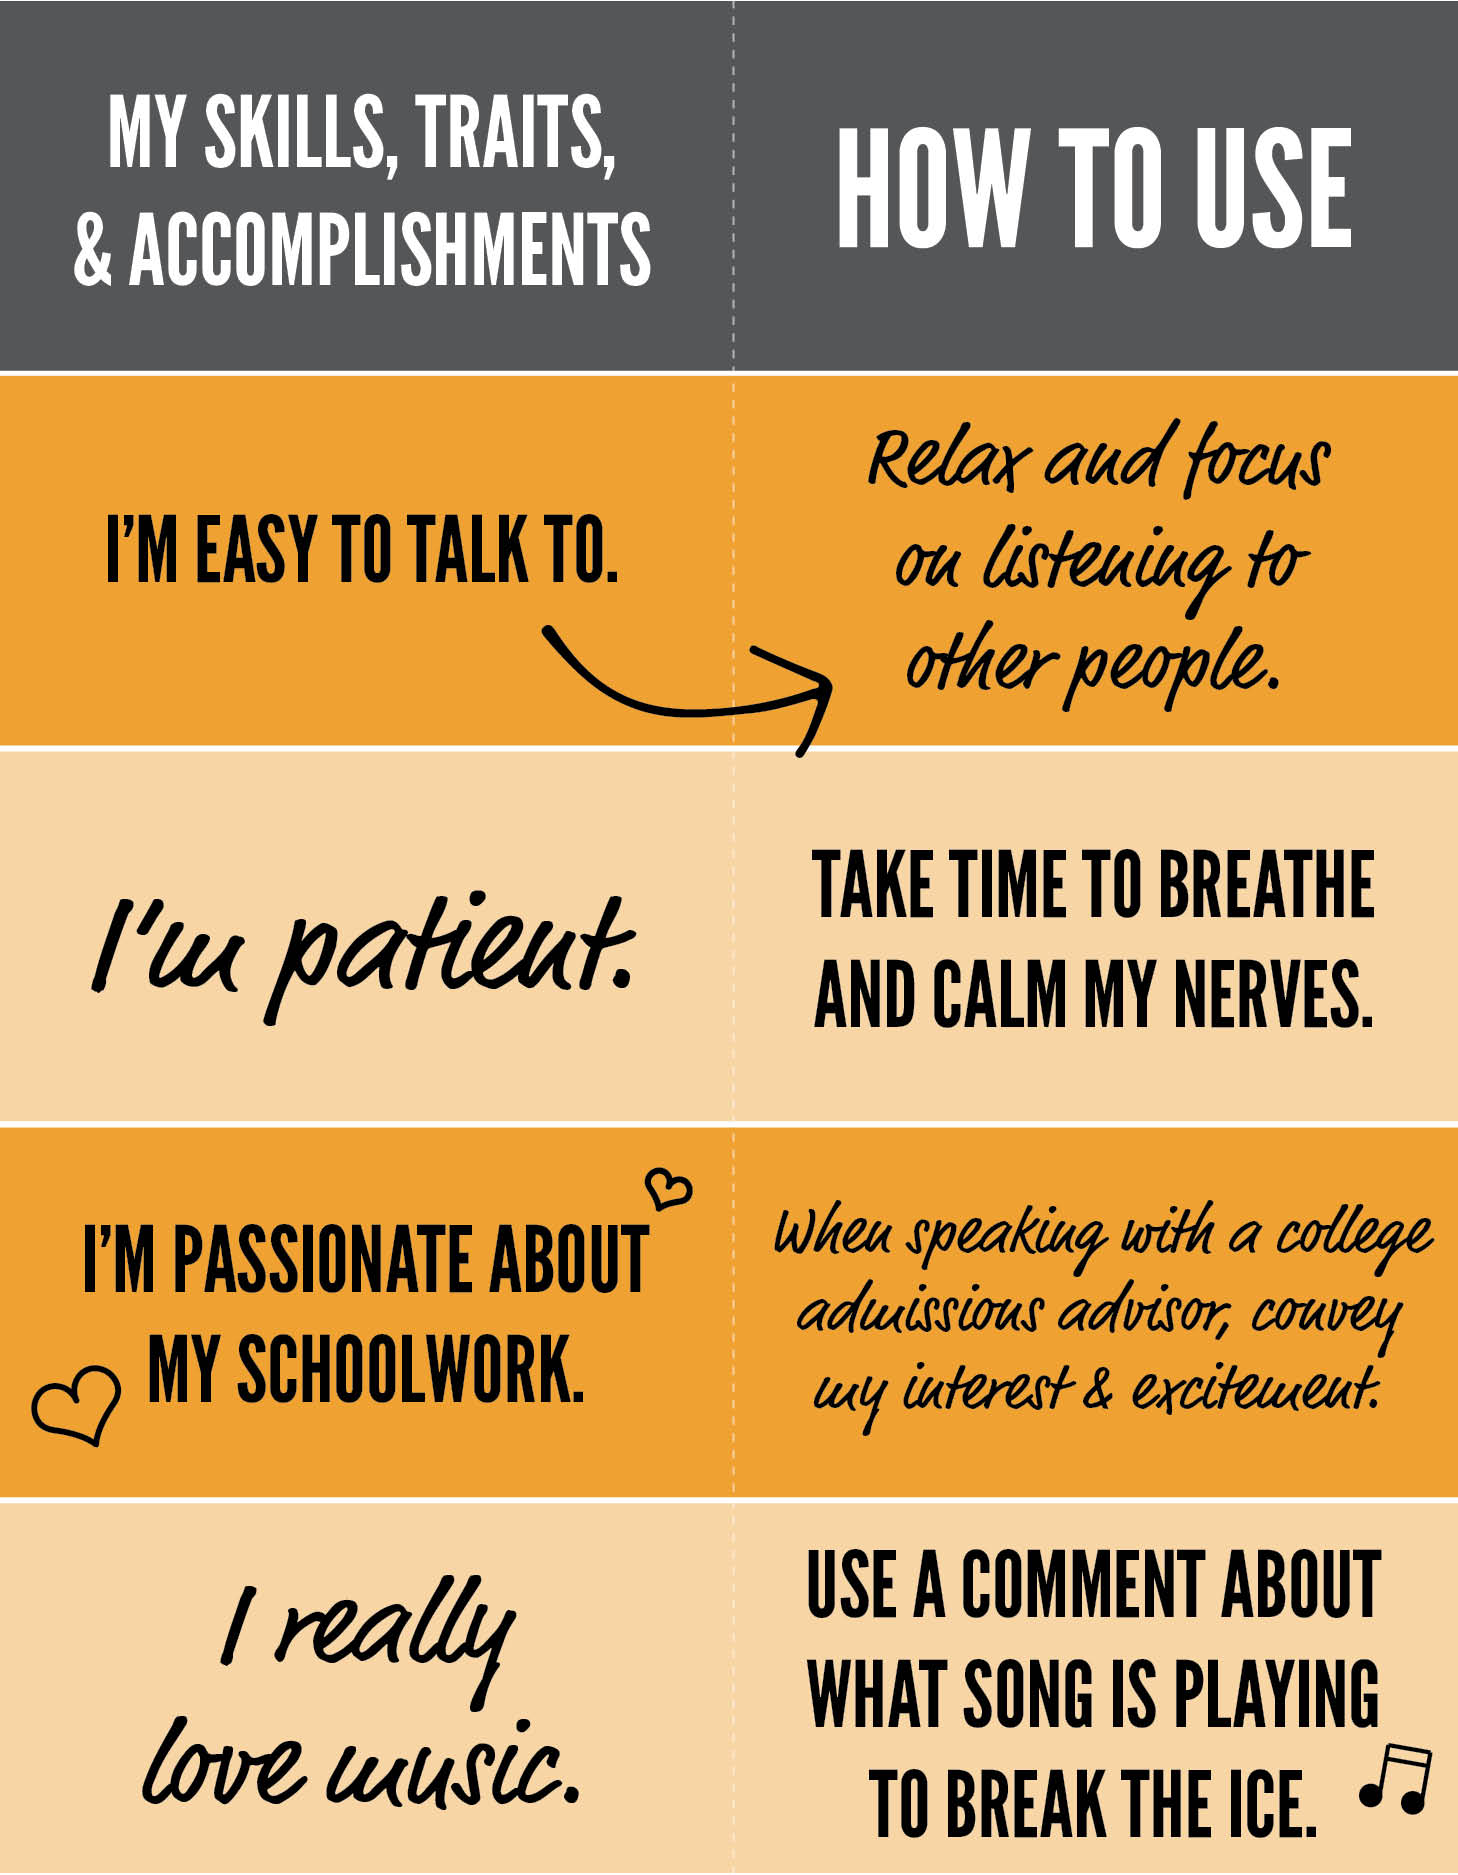 Two column chart: My skills, traits, & accomplishments vs. How to use. Row 1: I'm easy to talk to aligns with How to use: relax and focus on listening to other people Row 2: I'm patient. aligns with How to use: Take time to breathe and calm my nerves. Row 3: I'm passionate about my schoolwork aligns with How to use: When speaking with a college admissions advisor, convey my interest and excitement. Row 4: I really love music aligns with How to use: Use a comment about what say is playing to break the ice.